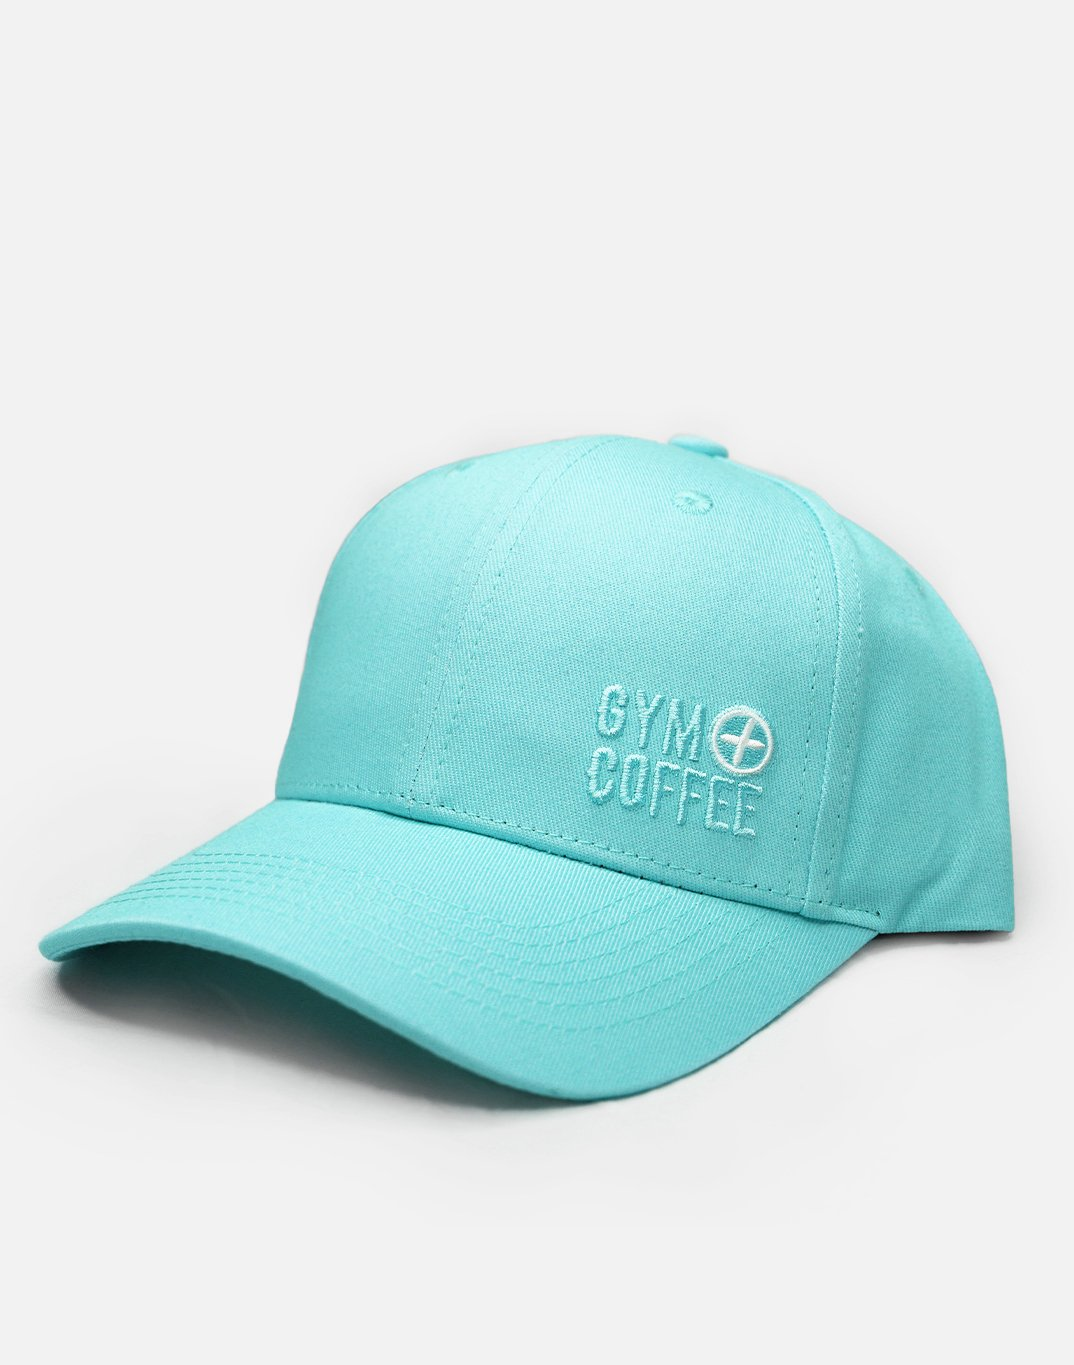 Gym Plus Coffee Hat Hats Off Cap in Mint Designed in Ireland